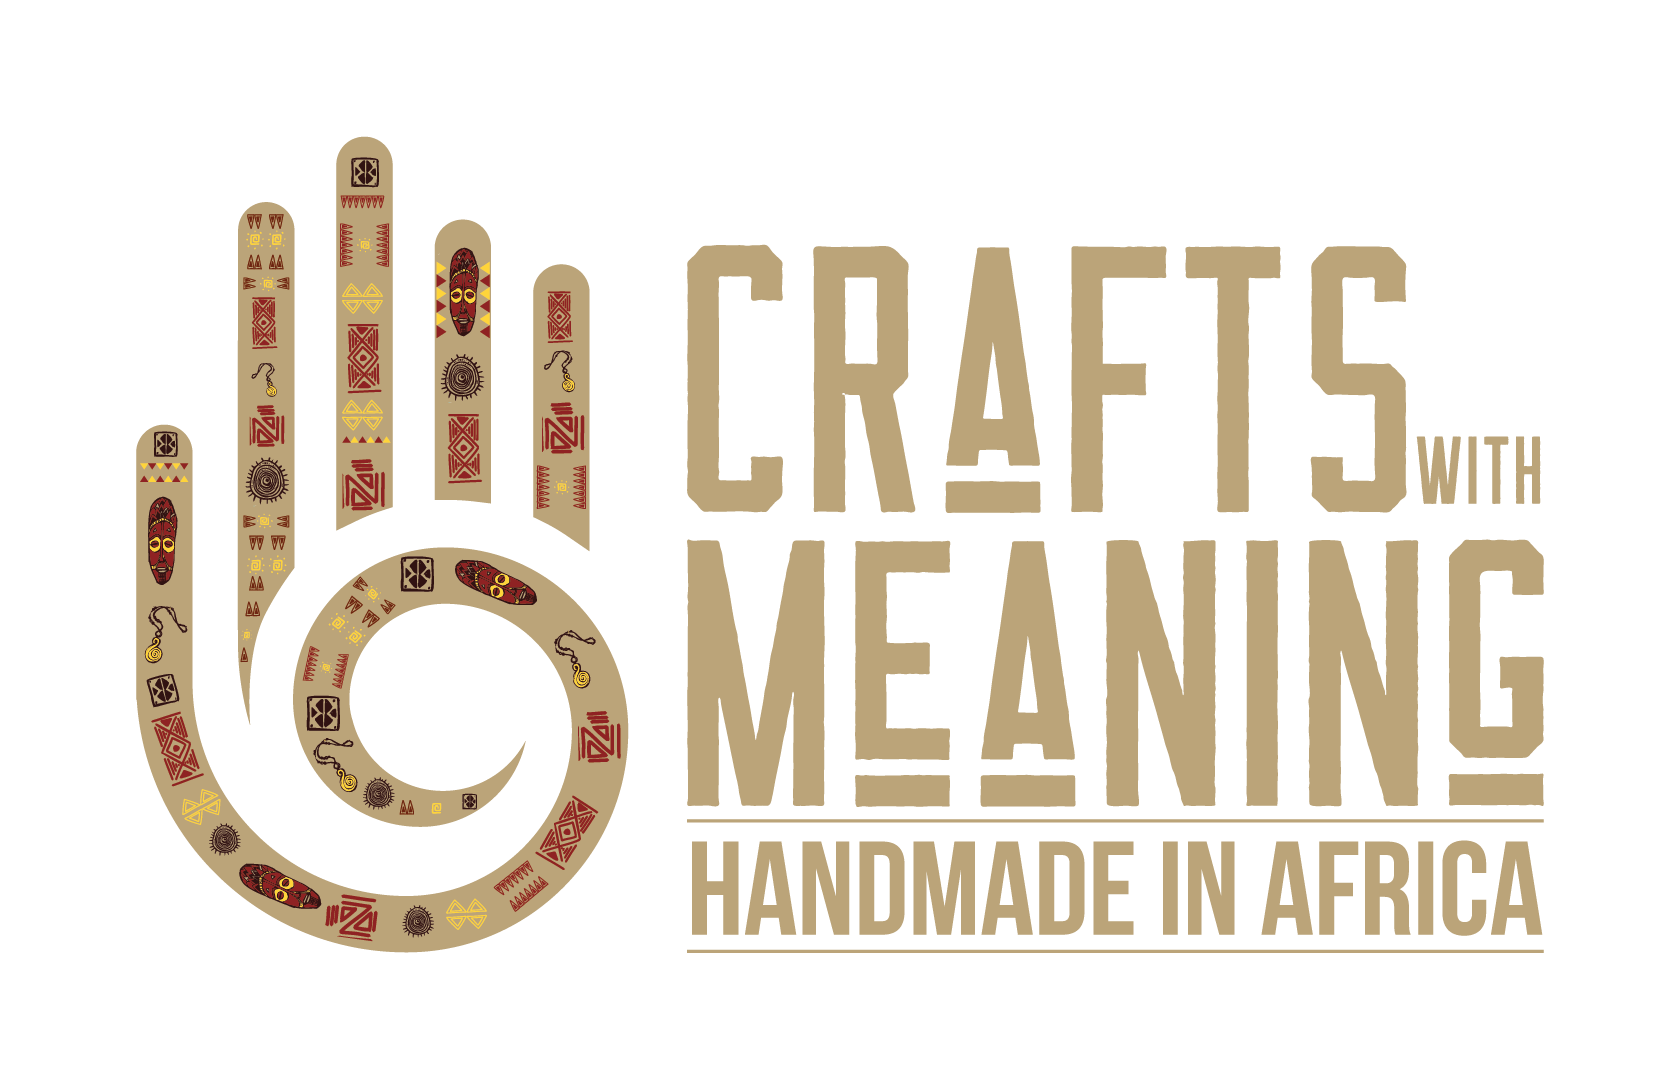 Crafts With Meaning